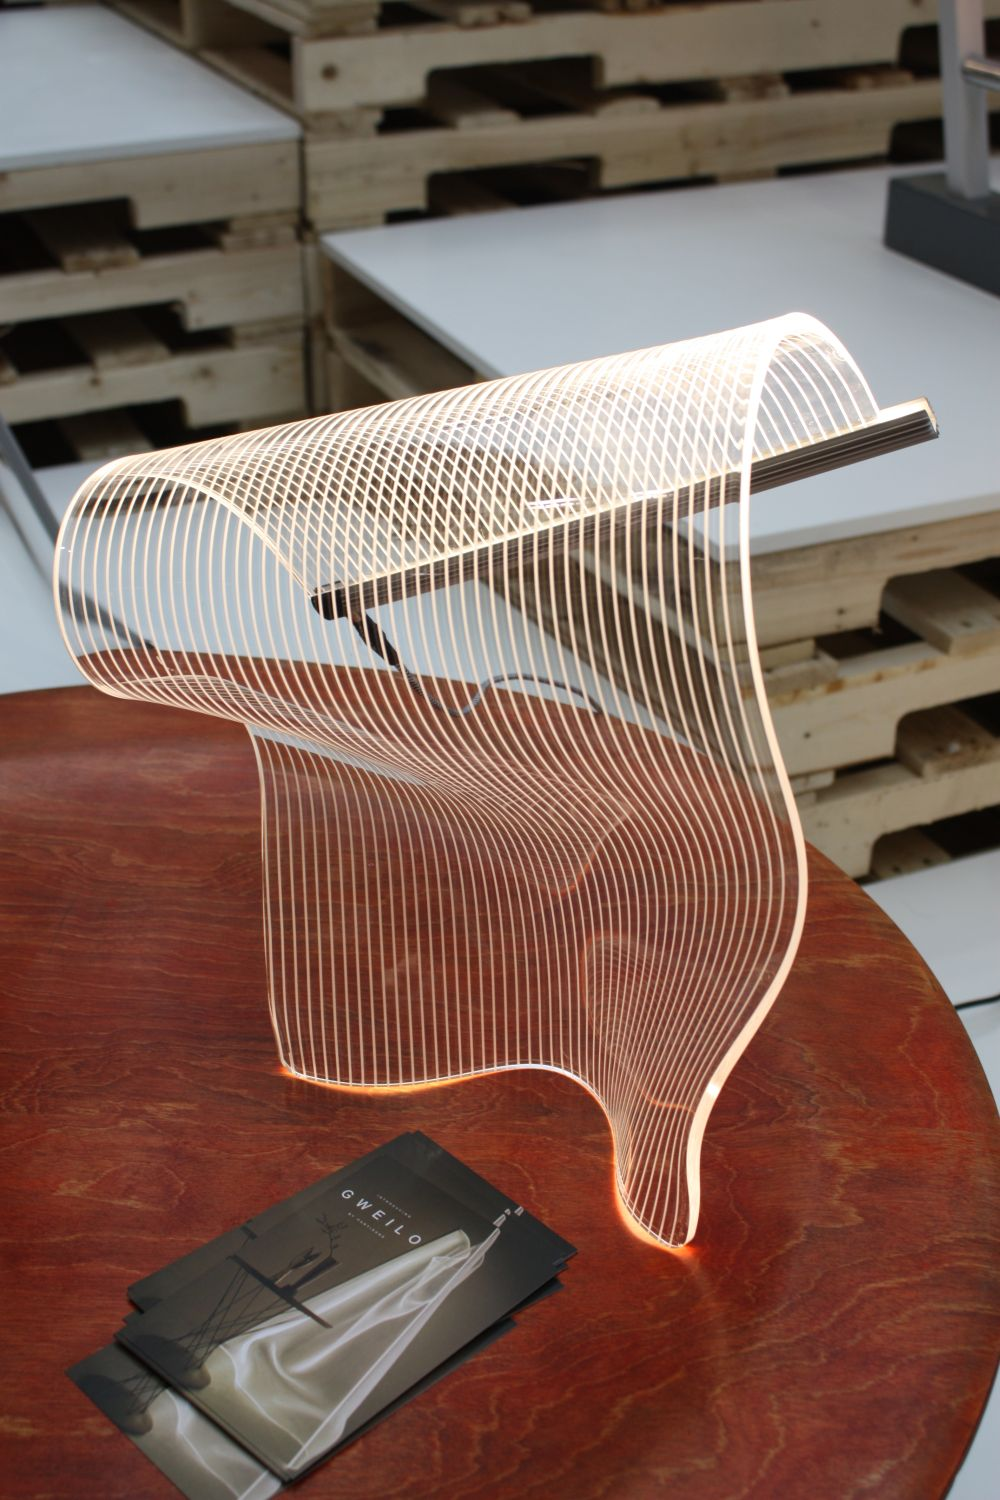 Acrylic Sheets Transform Light Into An Architectural Sculpture